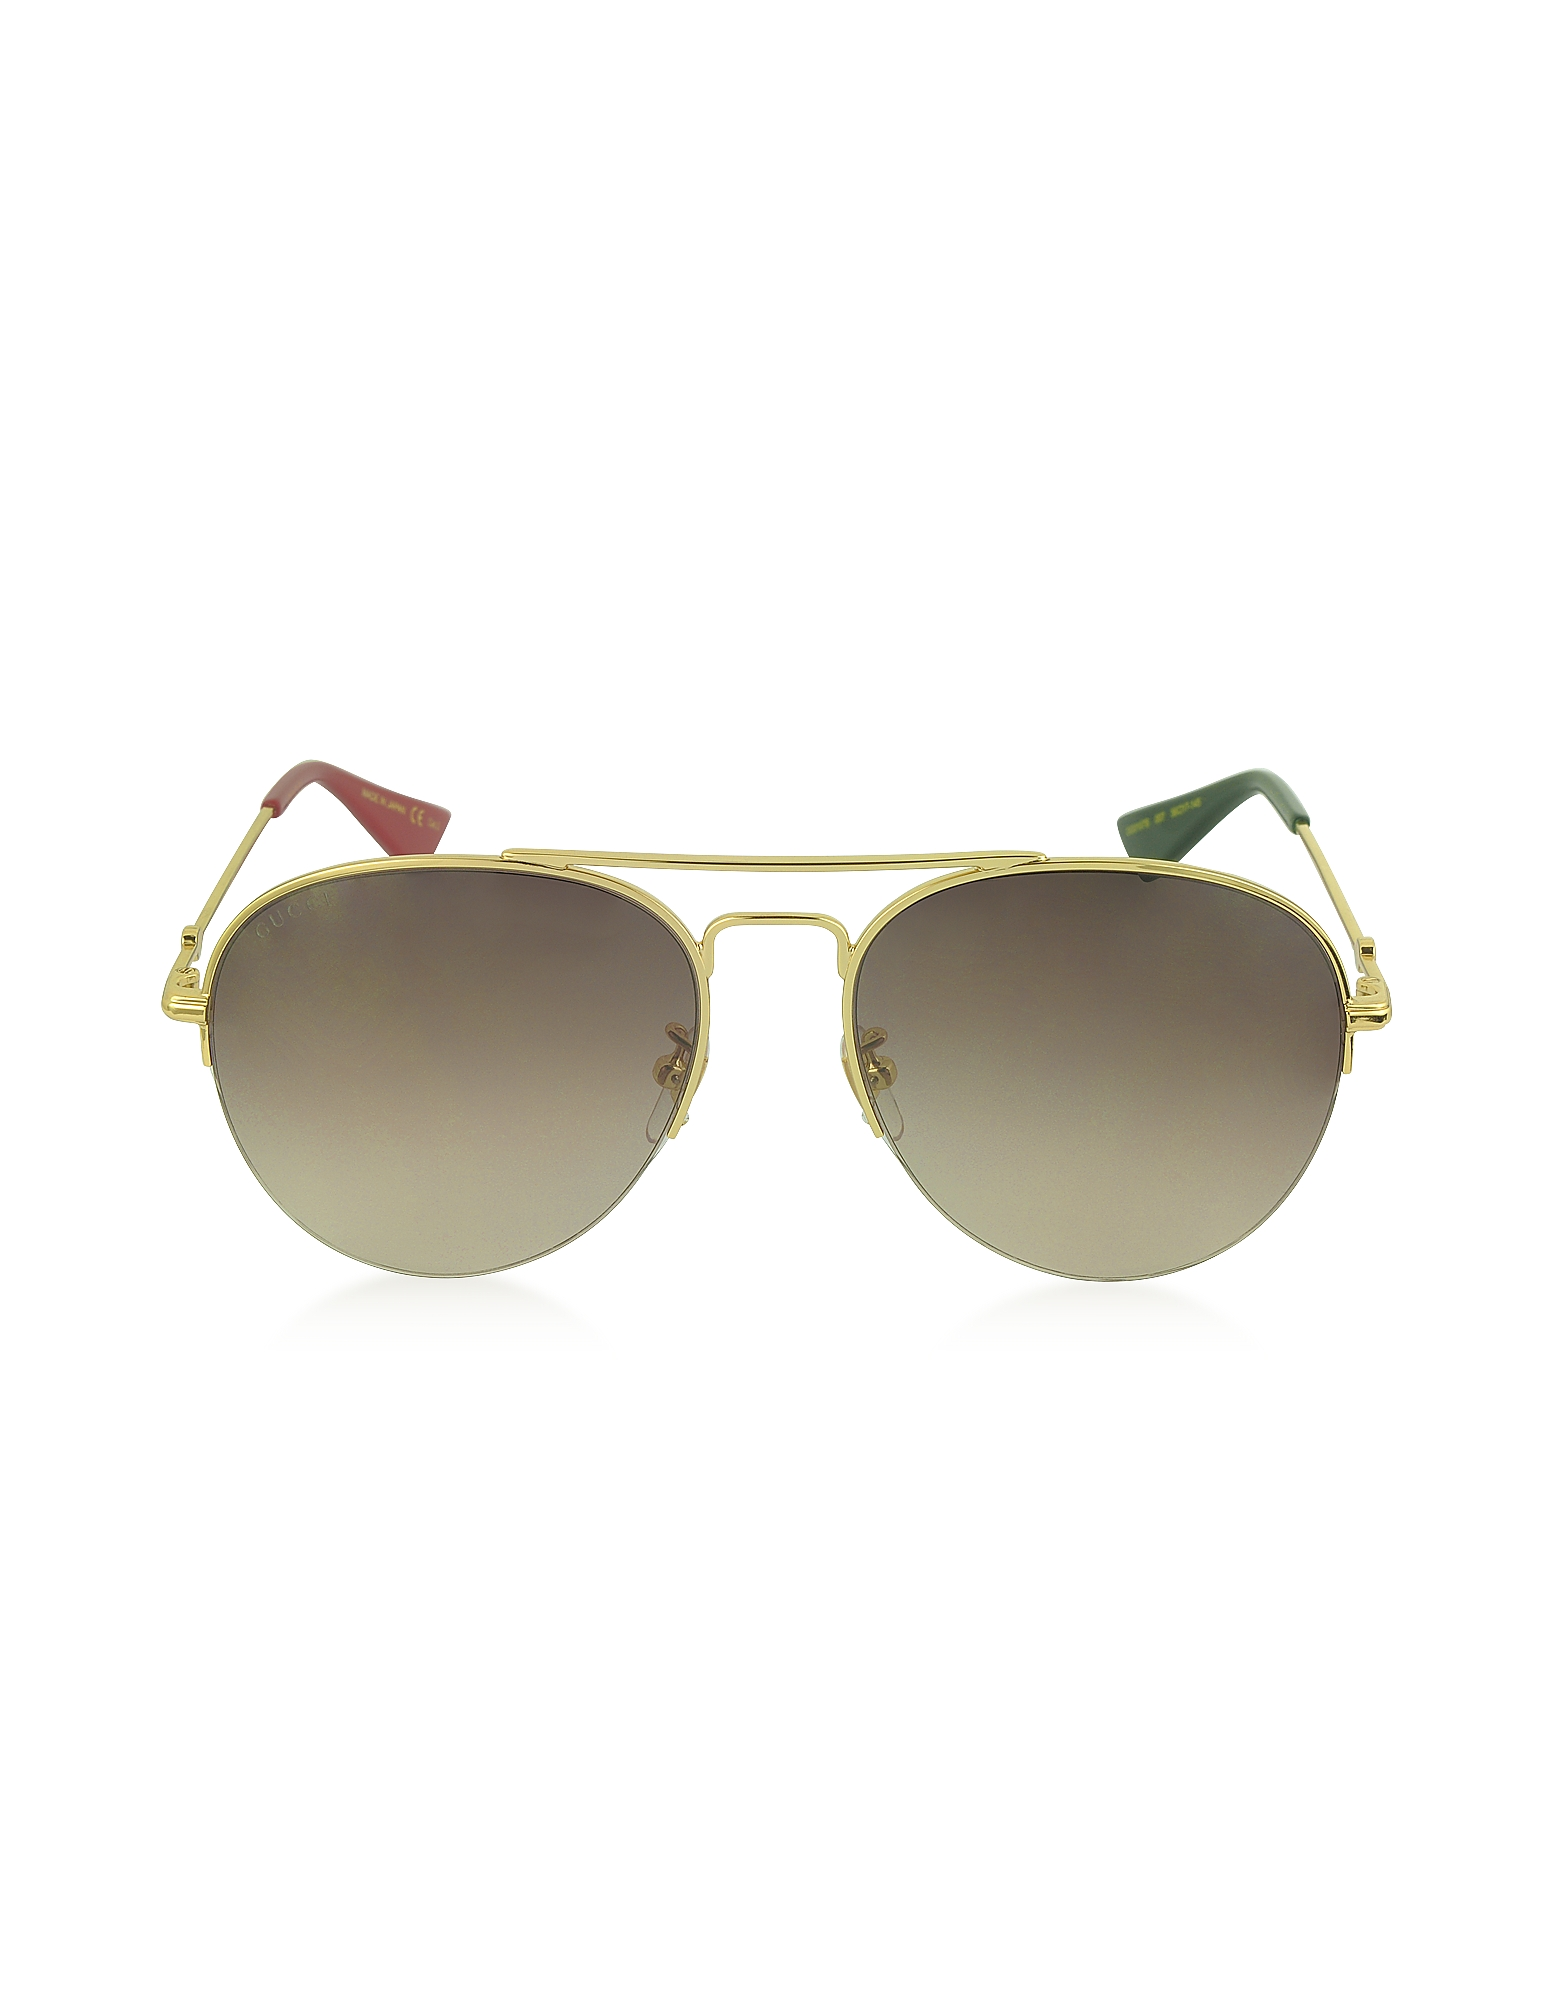 Gucci Sunglasses, GG0107S Metal Aviator Men's Sunglasses